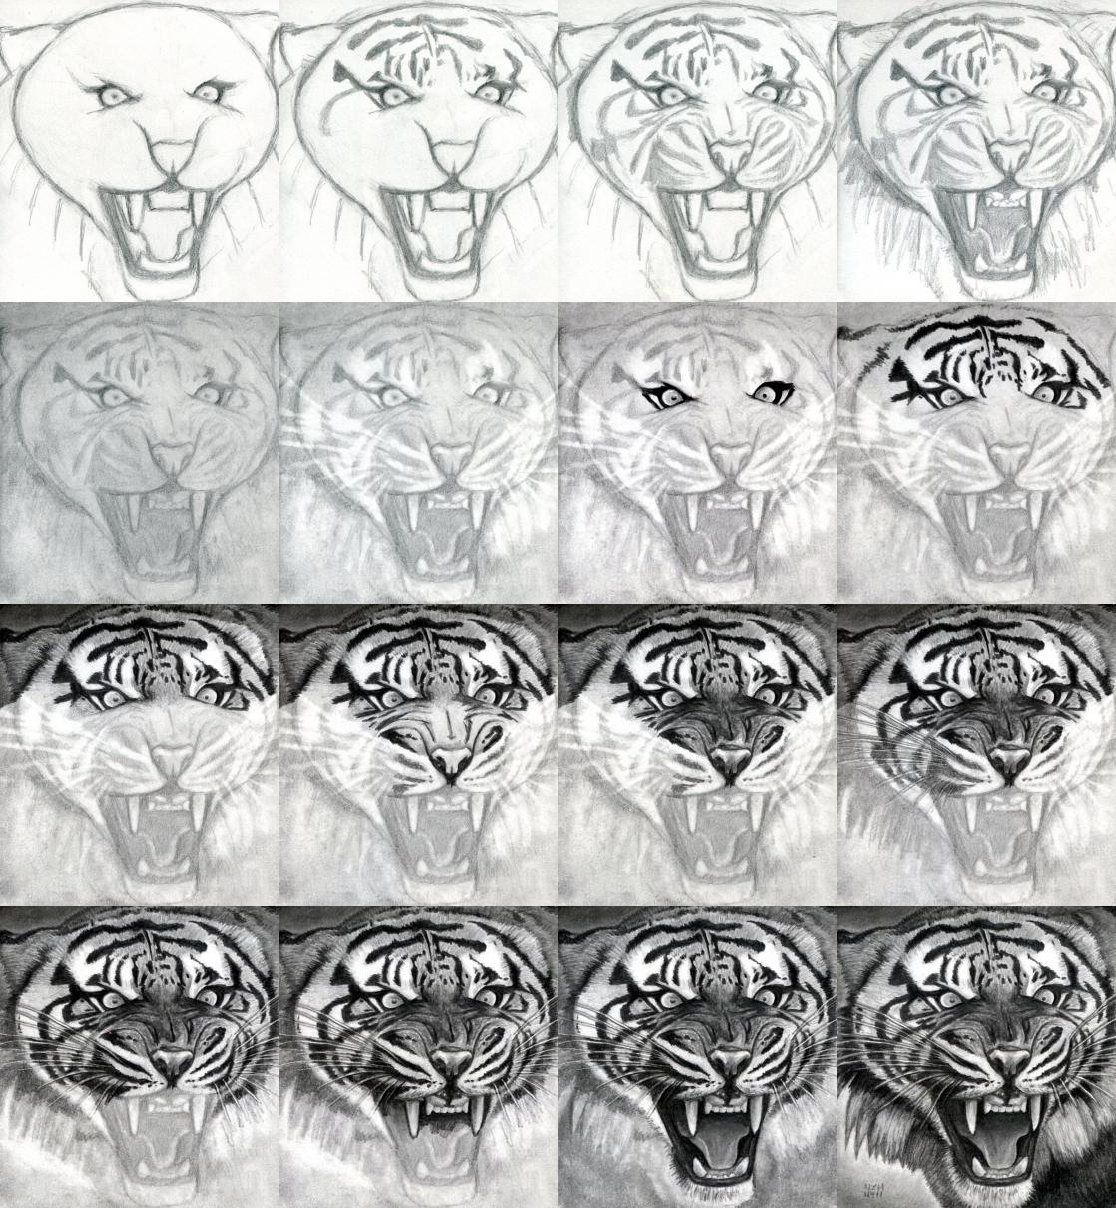 How to draw a realistic tiger honestly i could only do the first row without it looking like a total mess